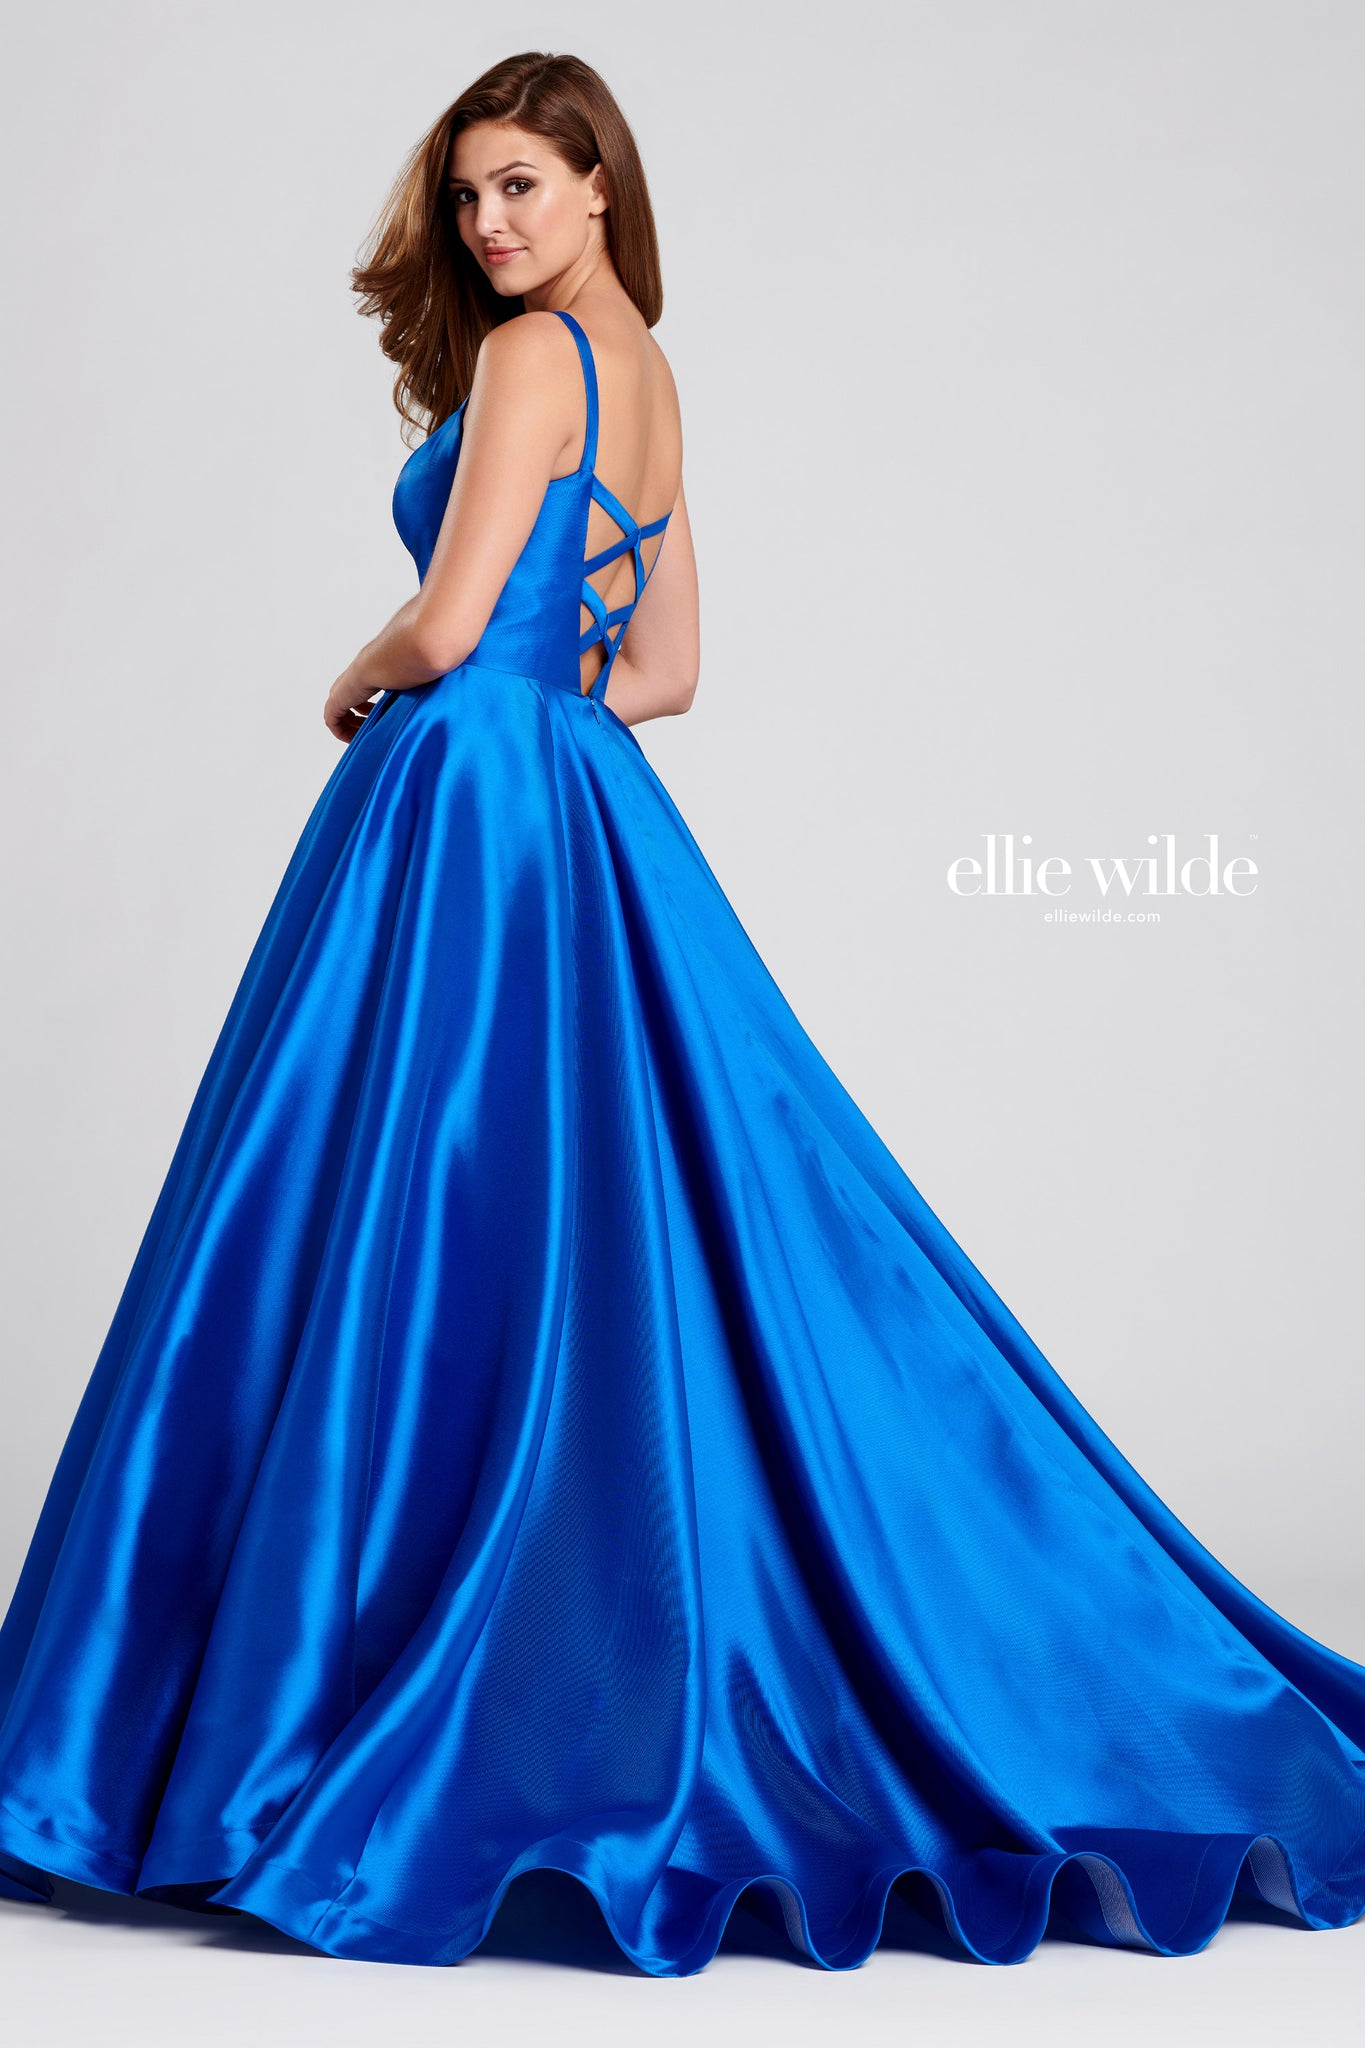 Ellie Wilde Satin Royal Blue Ballgown